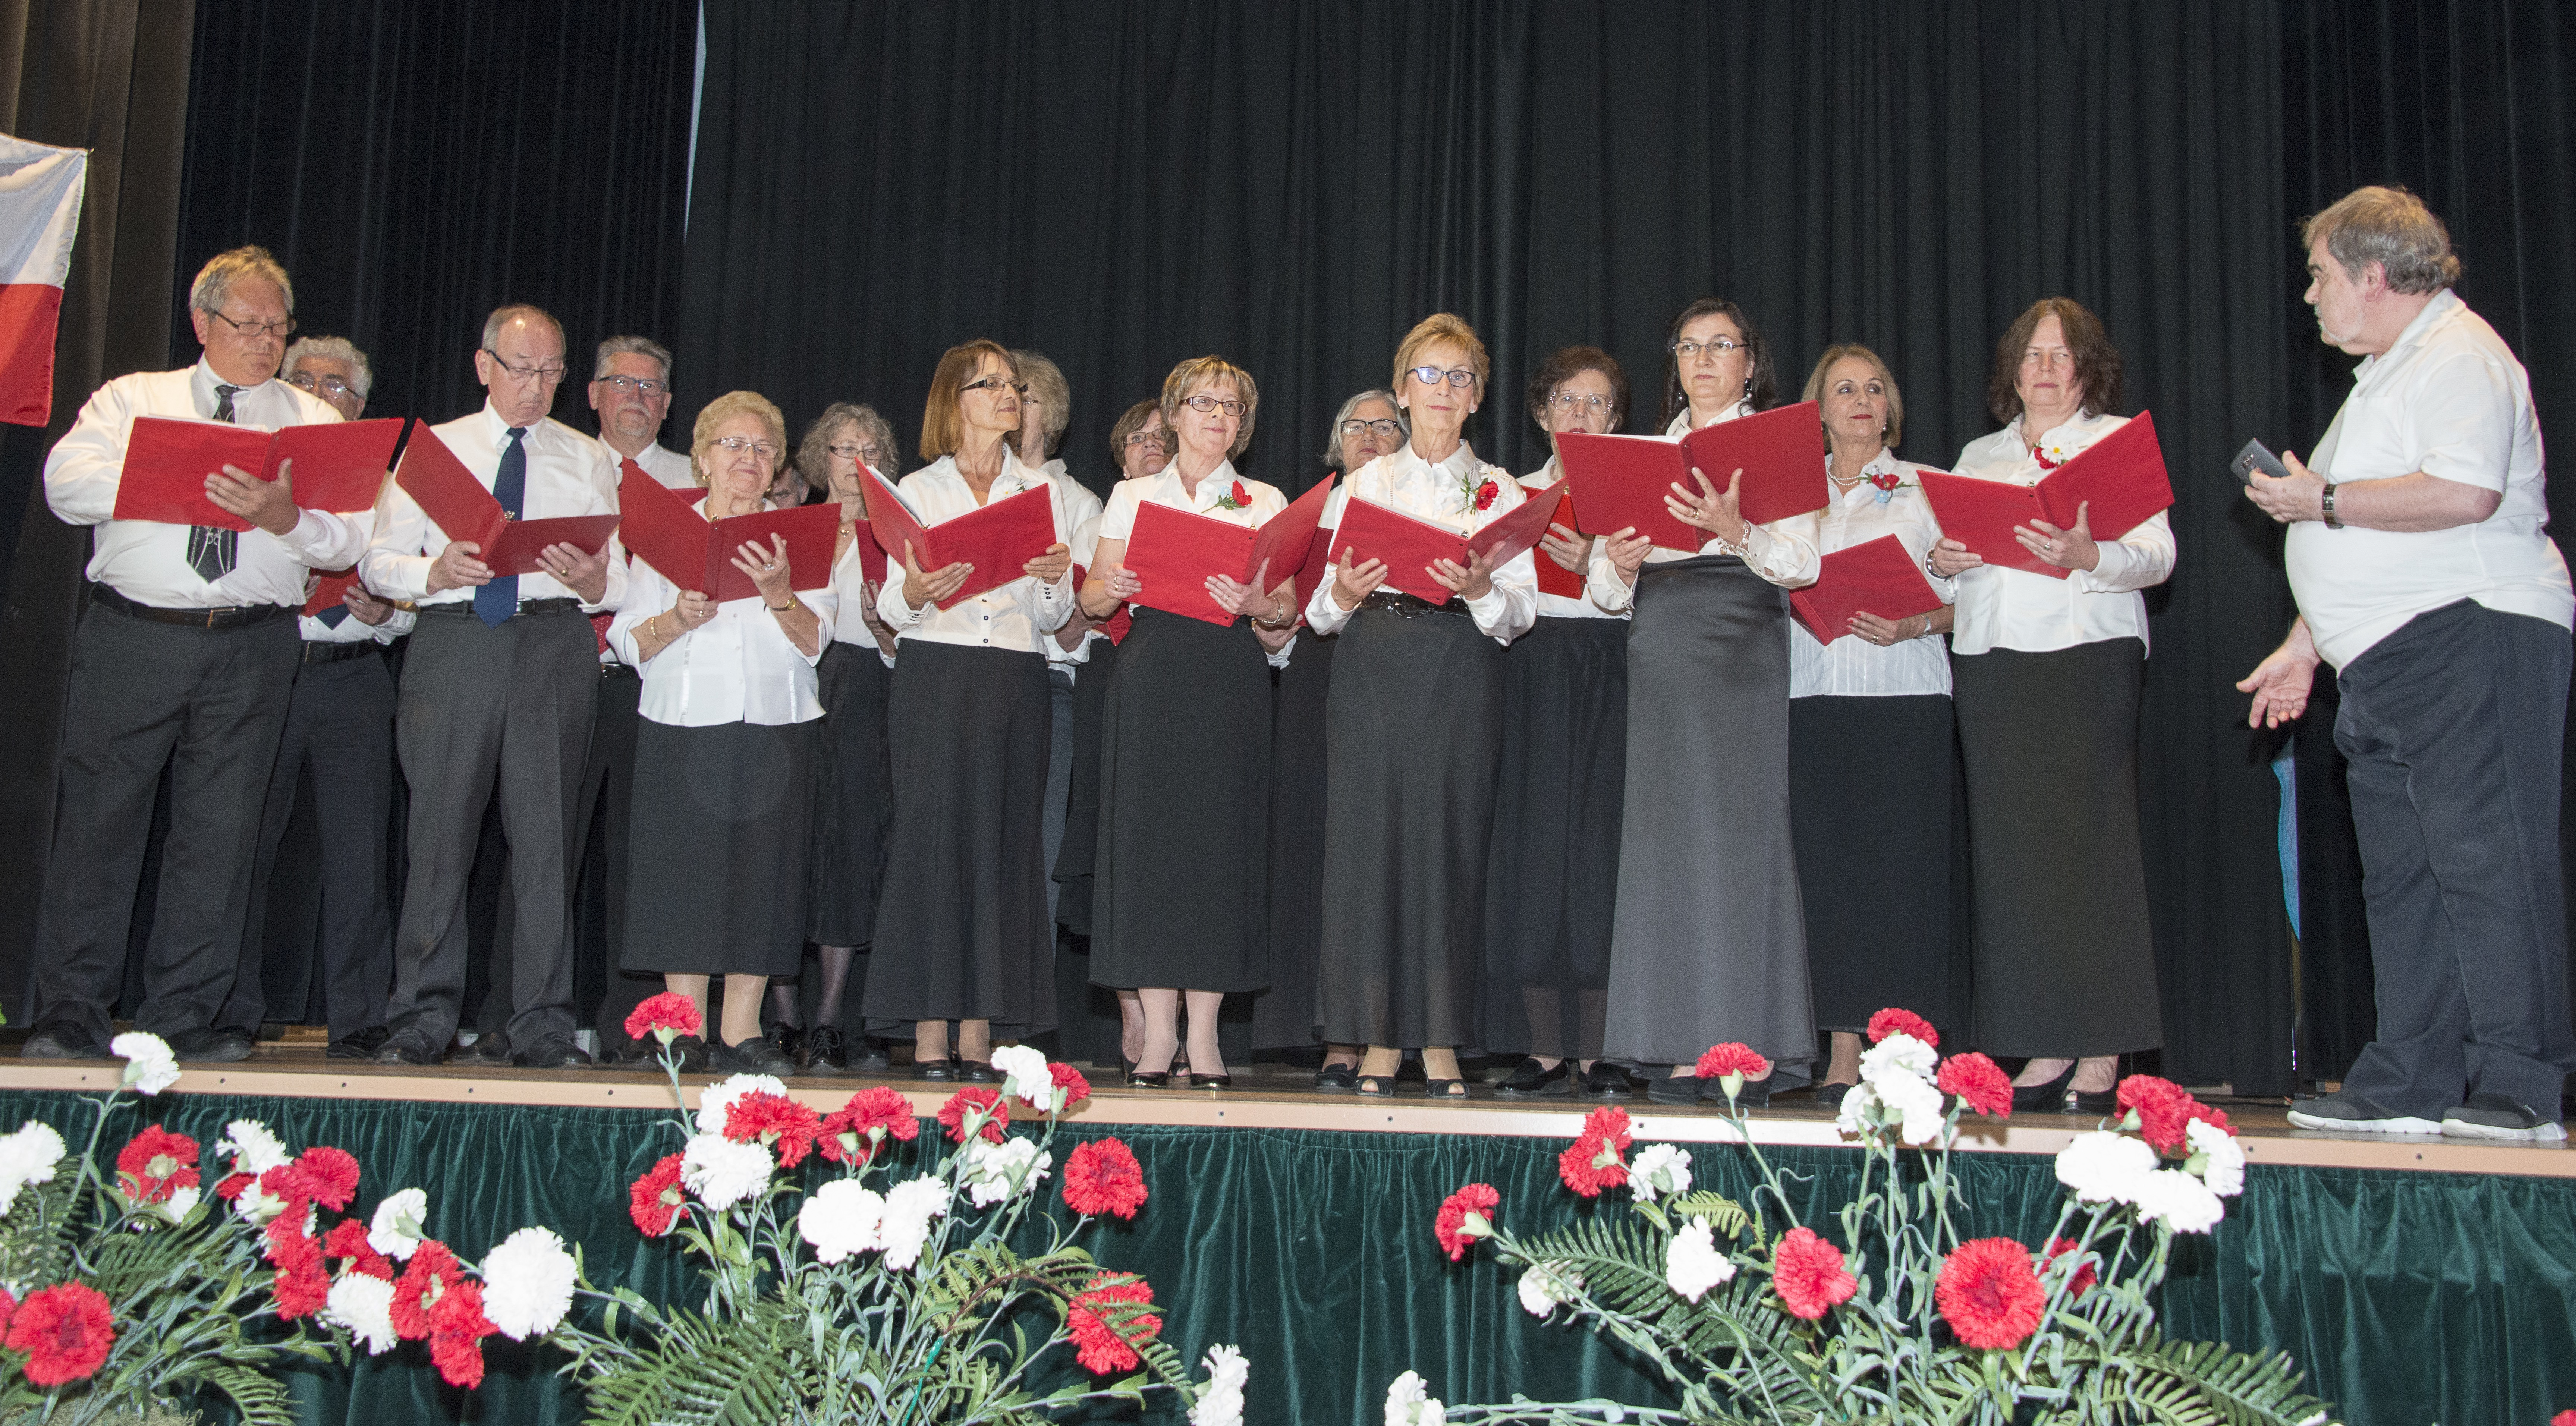 The Choir 'Polish Tunes'